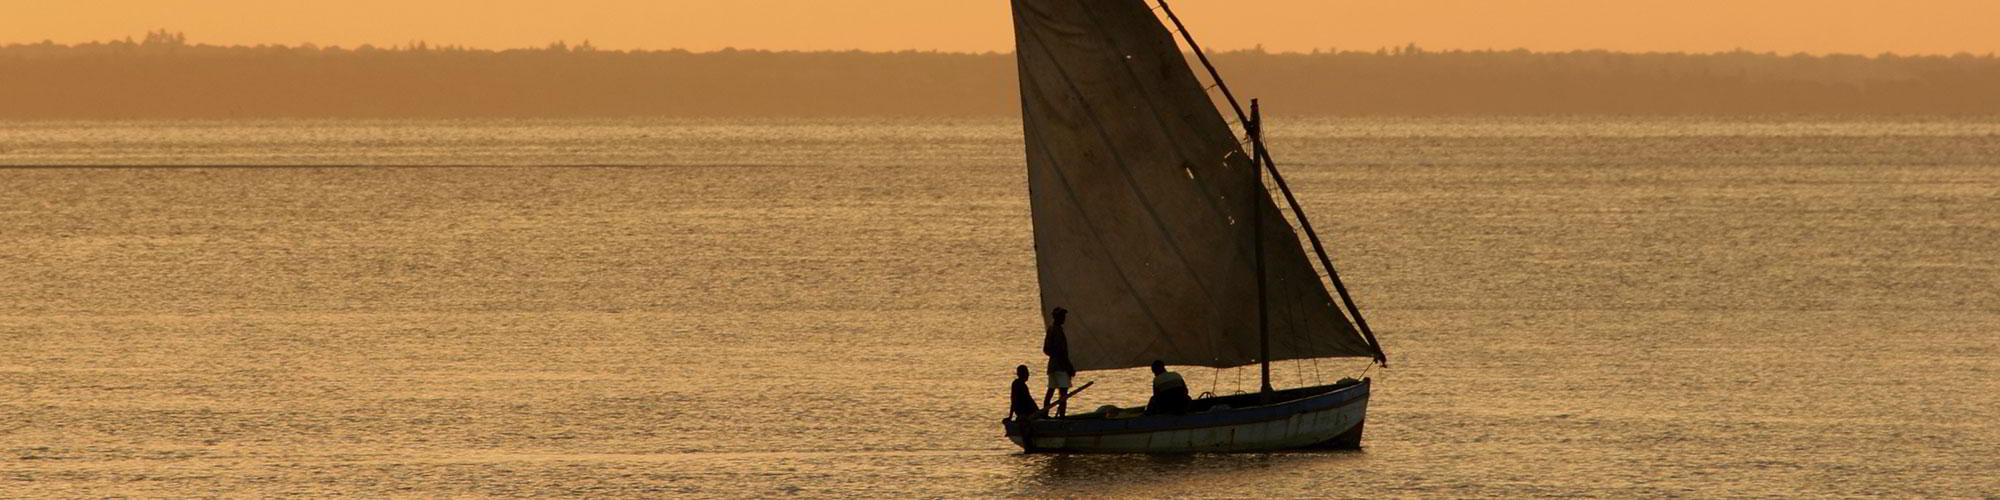 Journeys to Mozambique